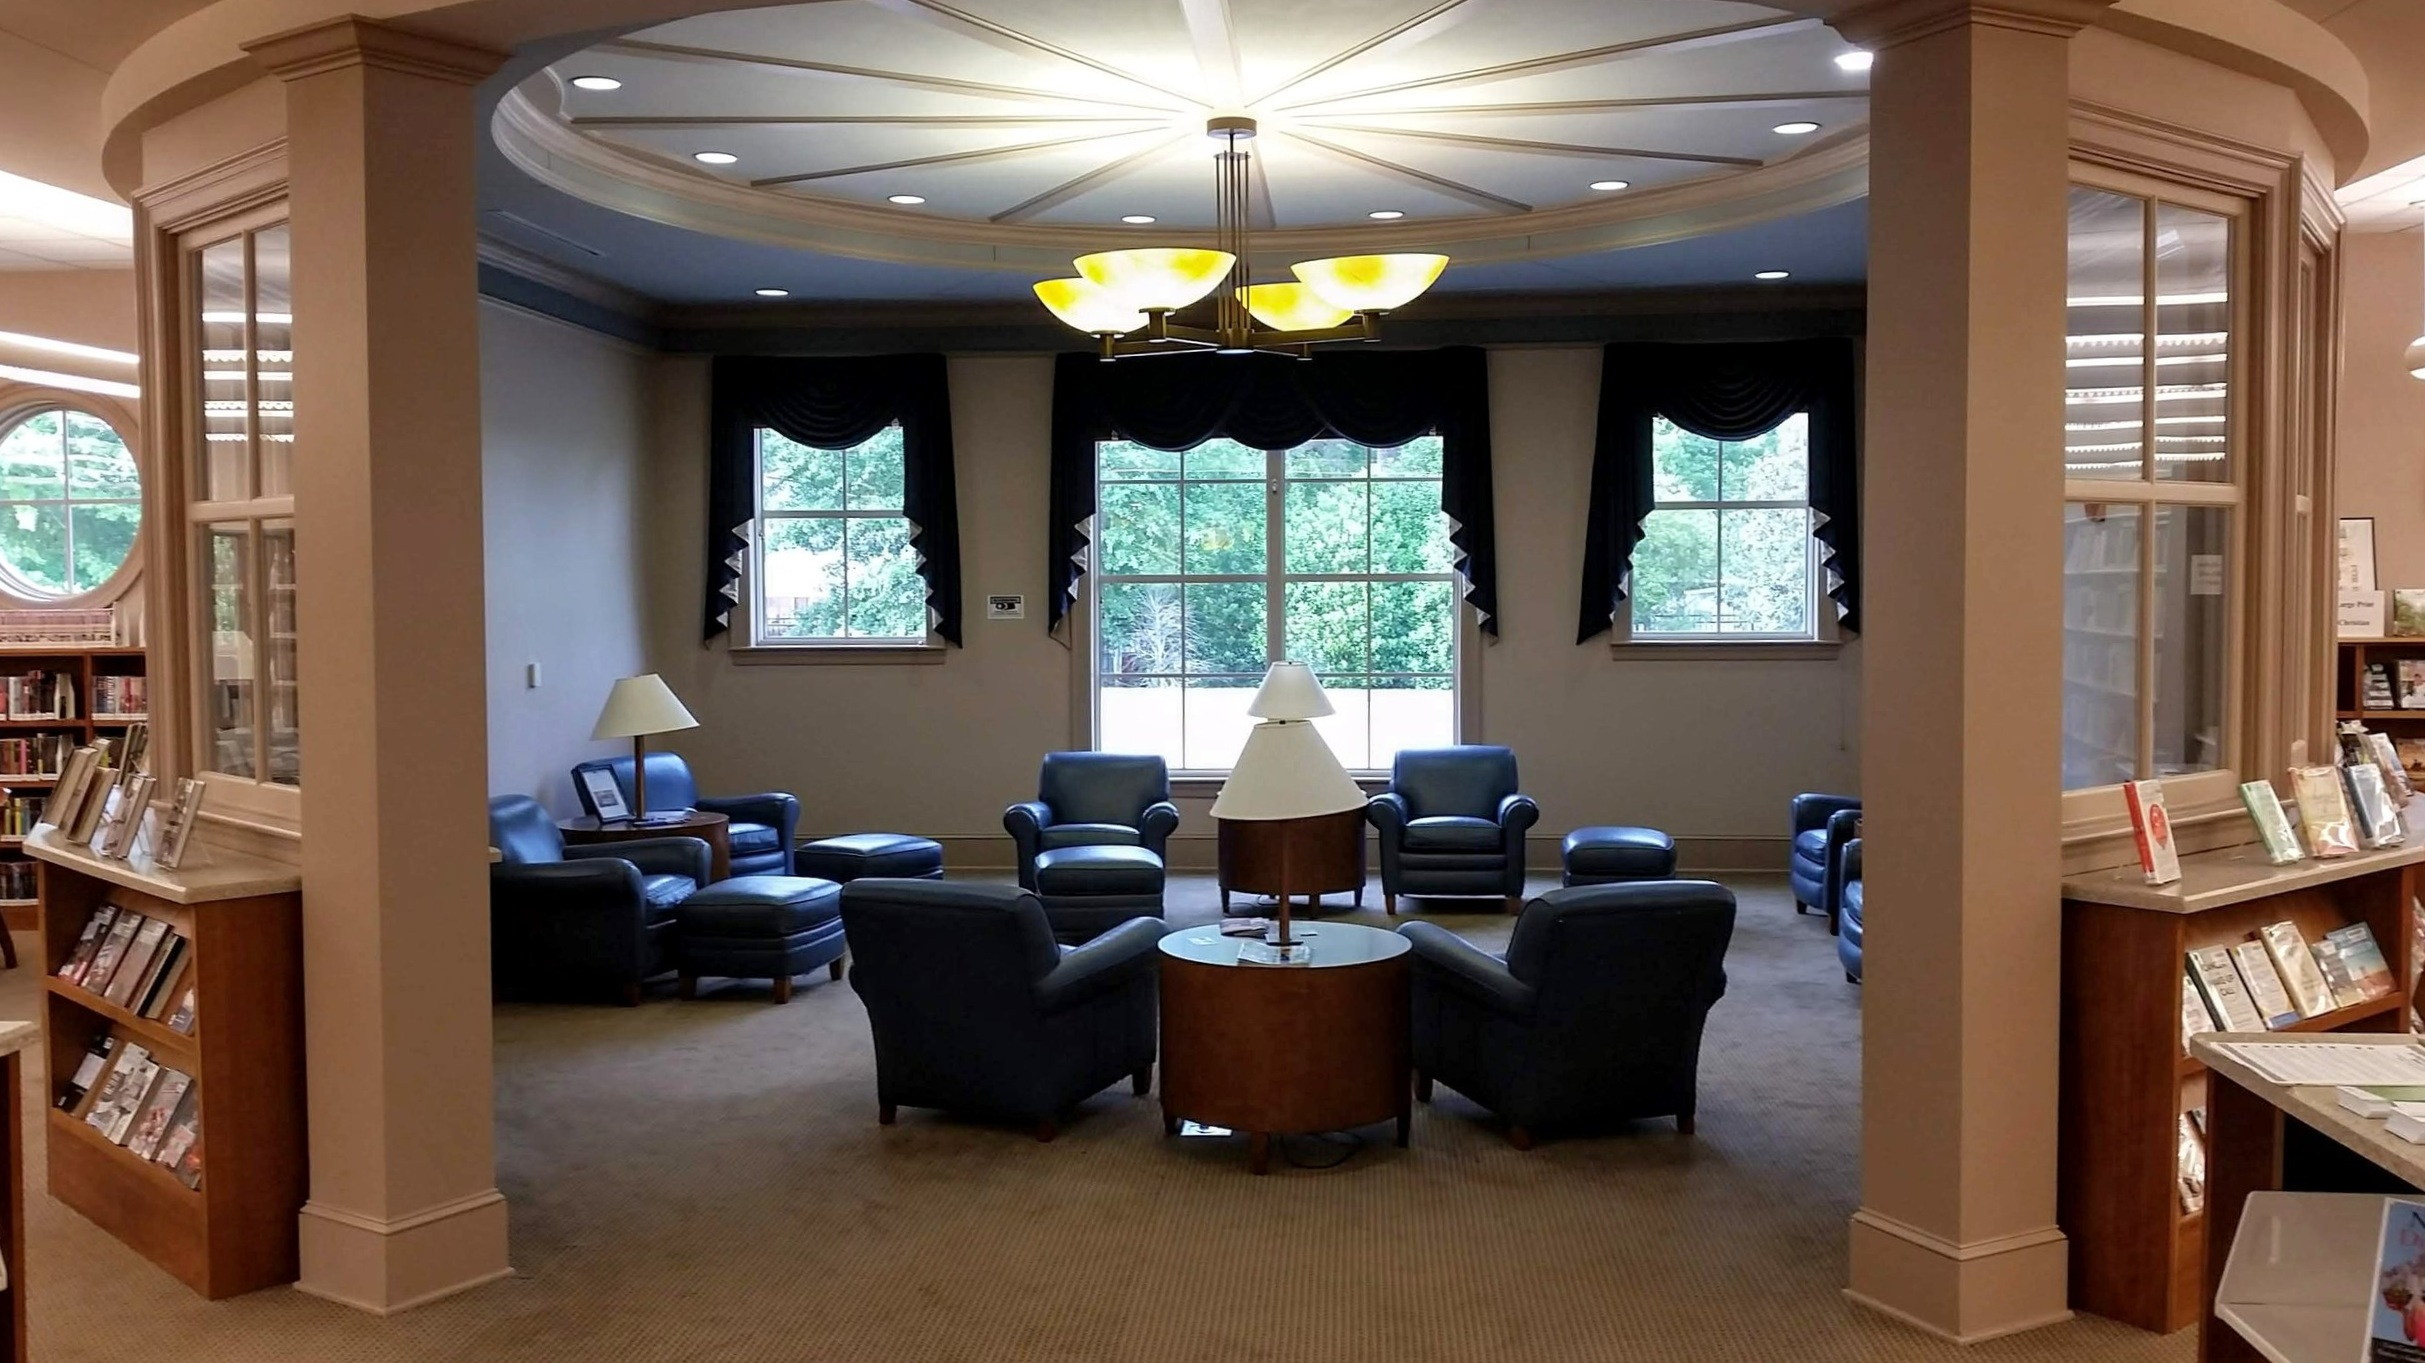 The reading room at the Lanford Public Library